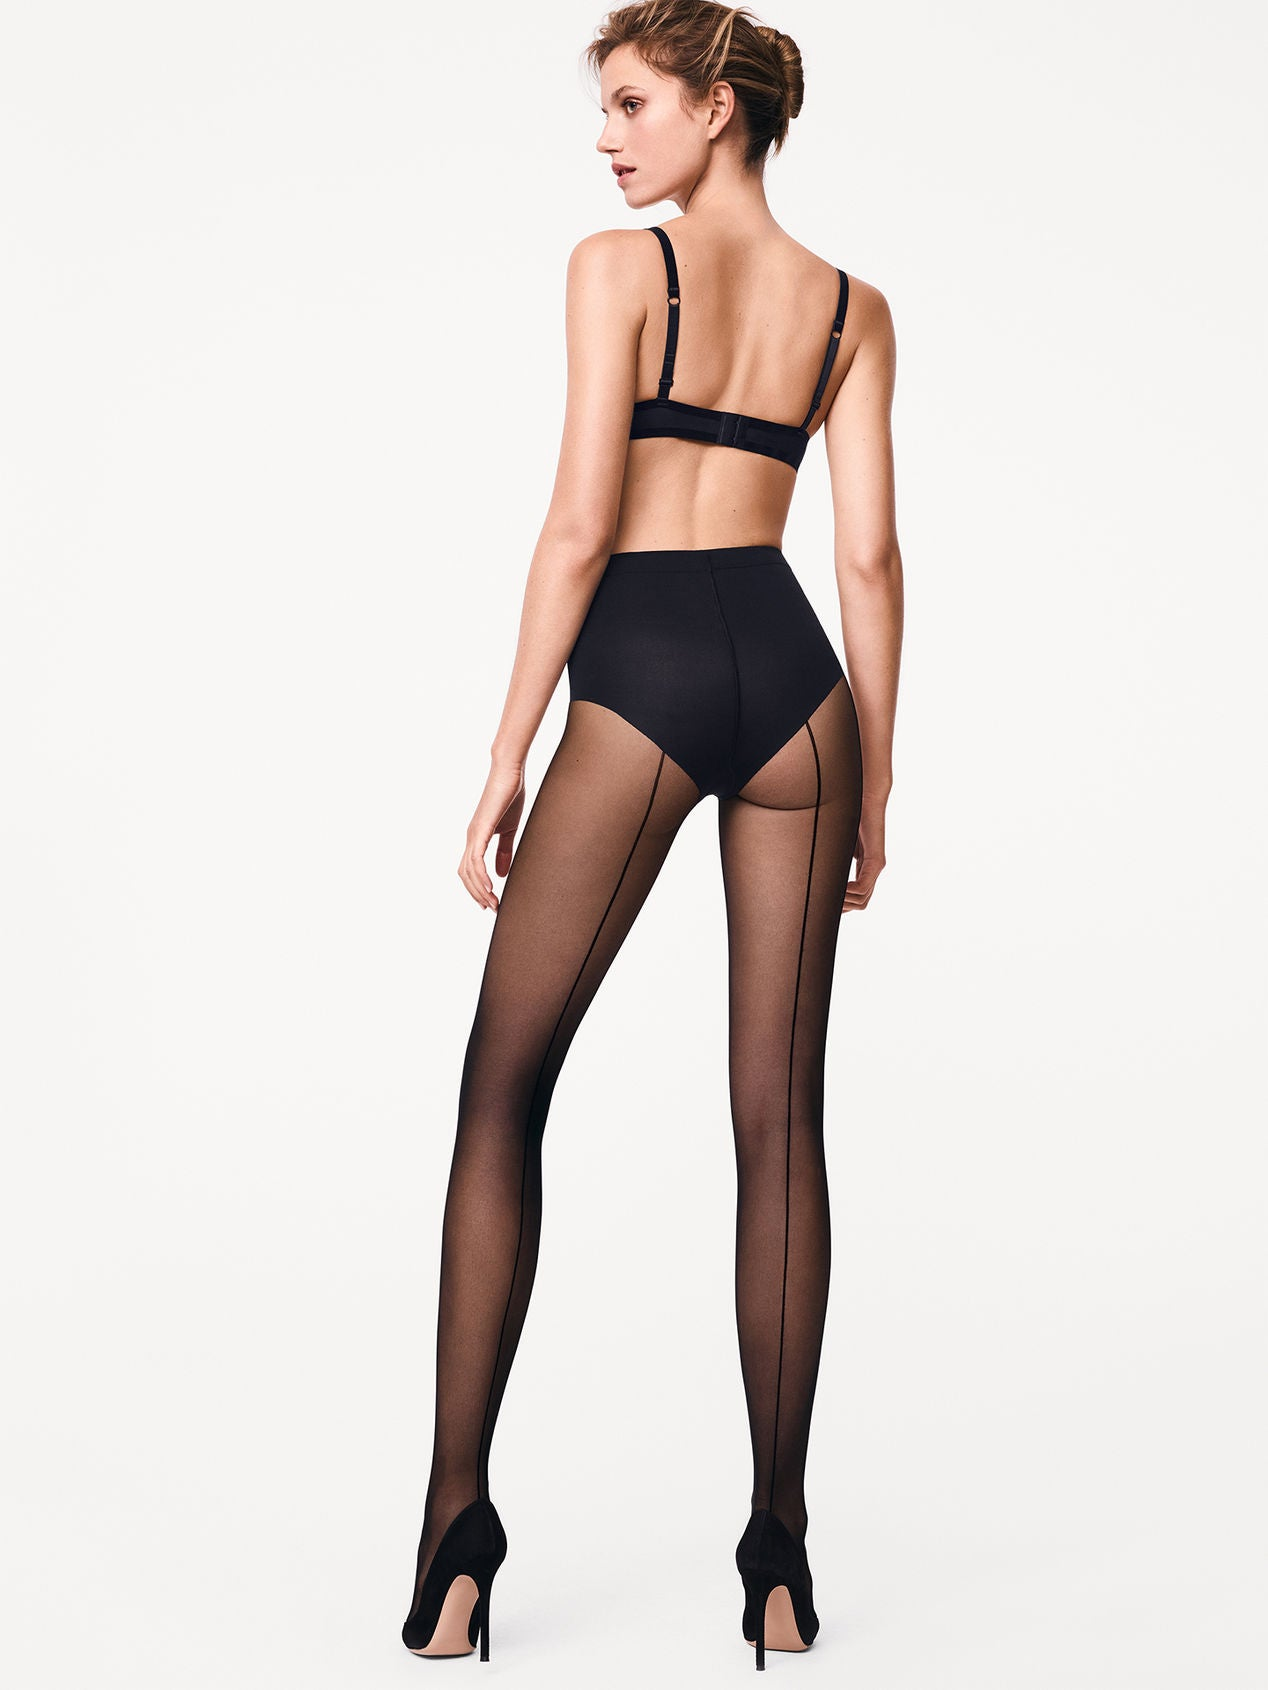 Wolford  Individual 10 Control Top + Black Seam Tights